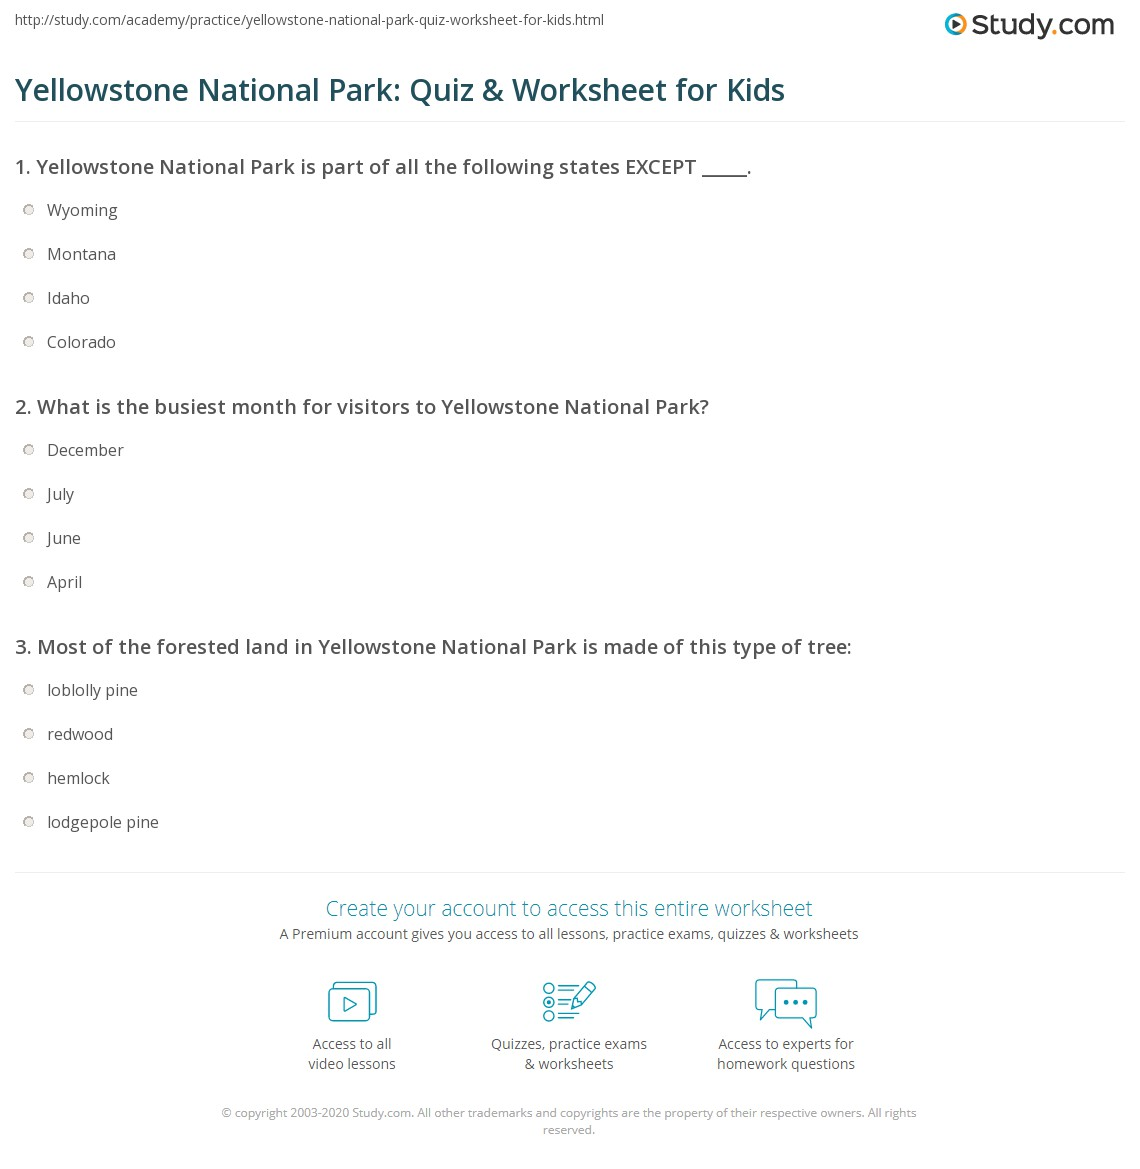 worksheet Yellowstone National Park Worksheets yellowstone national park quiz worksheet for kids study com print facts lesson worksheet